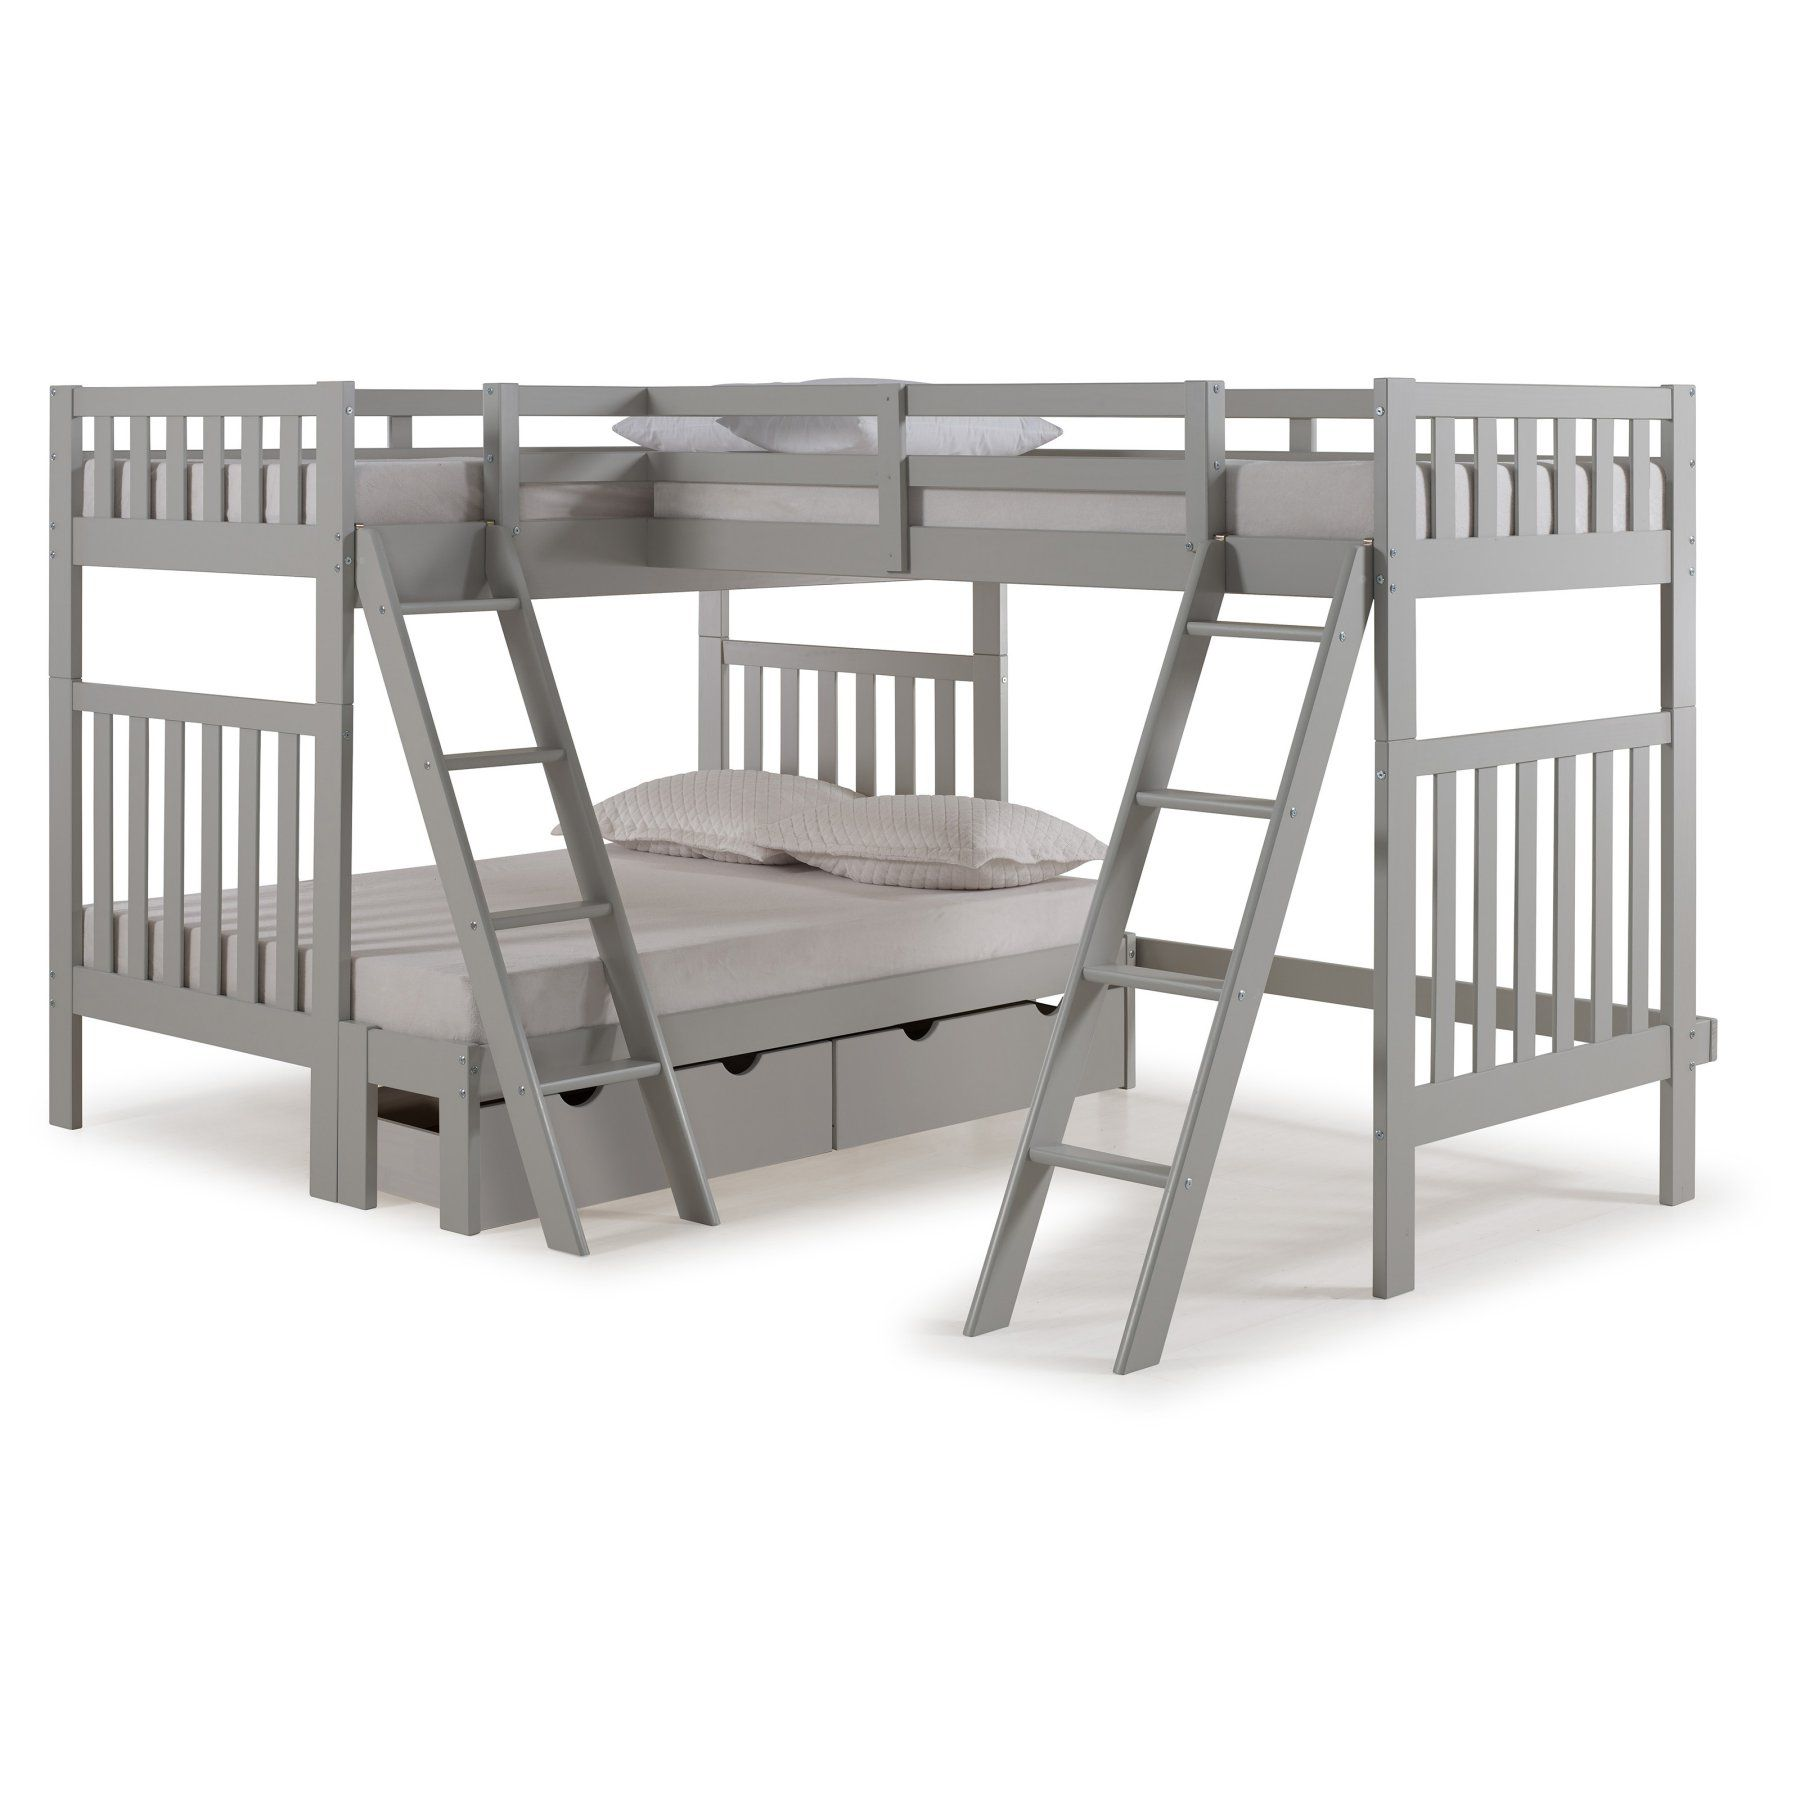 . Alaterre Aurora Twin Over Full Bunk Bed with Third Bunk Extension